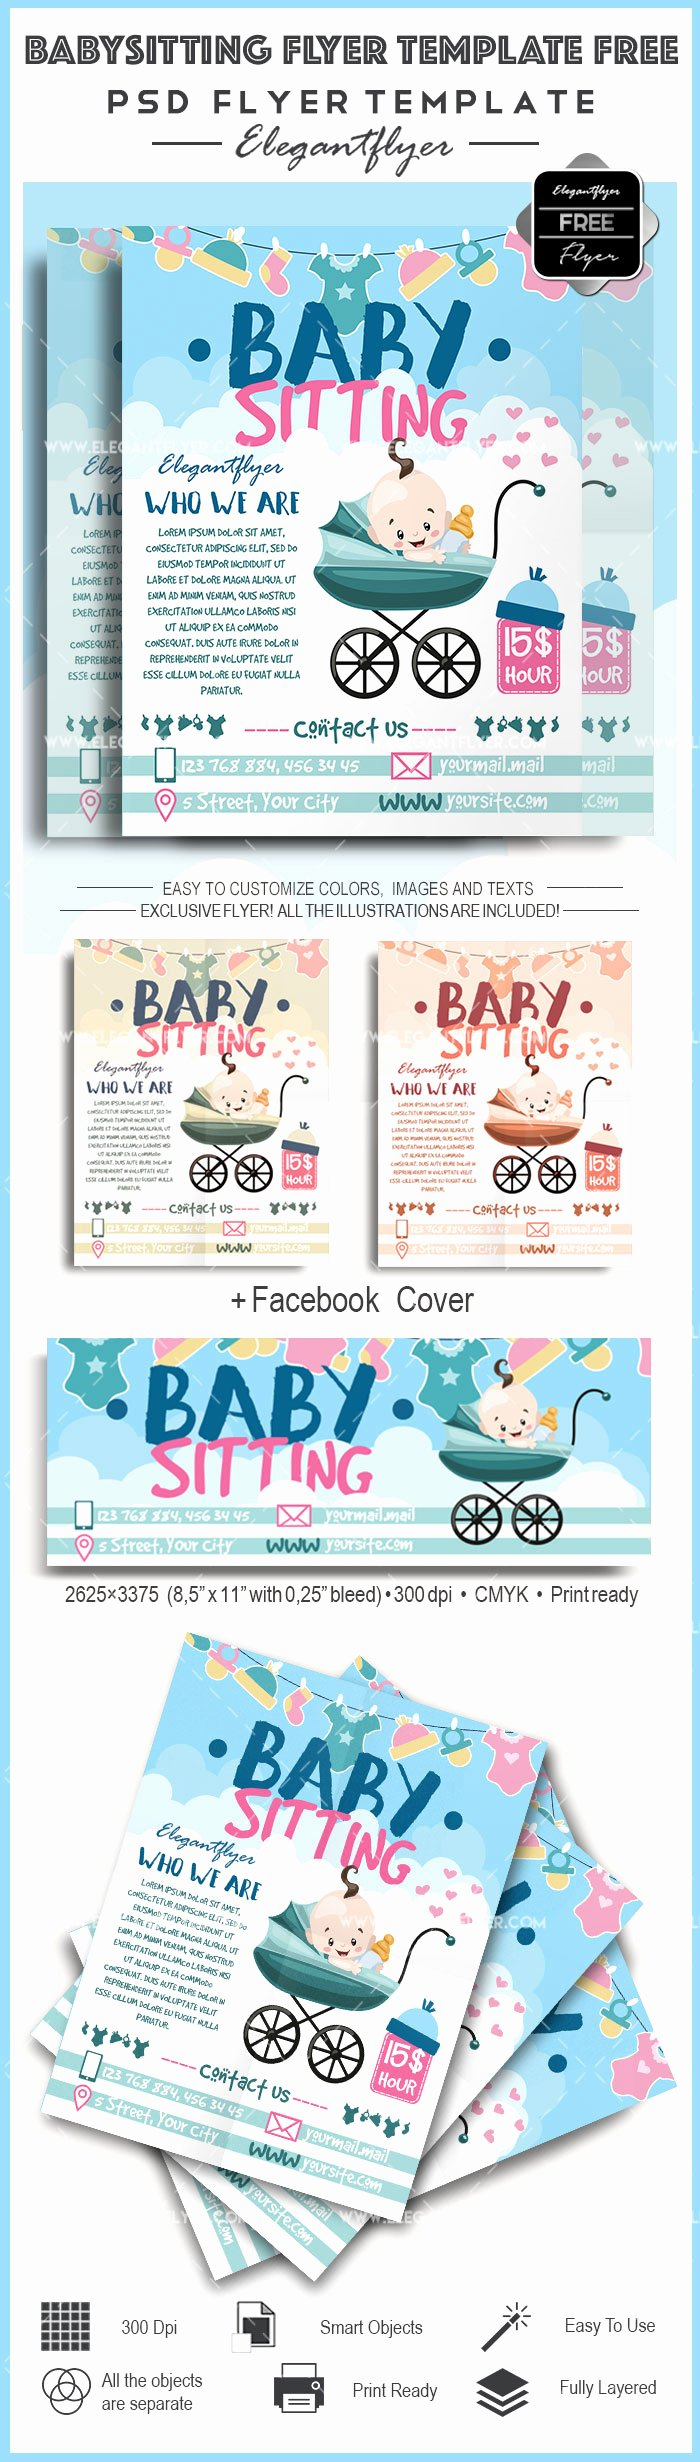 Babysitting Flyer Templates Free Beautiful Free Babysitting Psd Template – by Elegantflyer